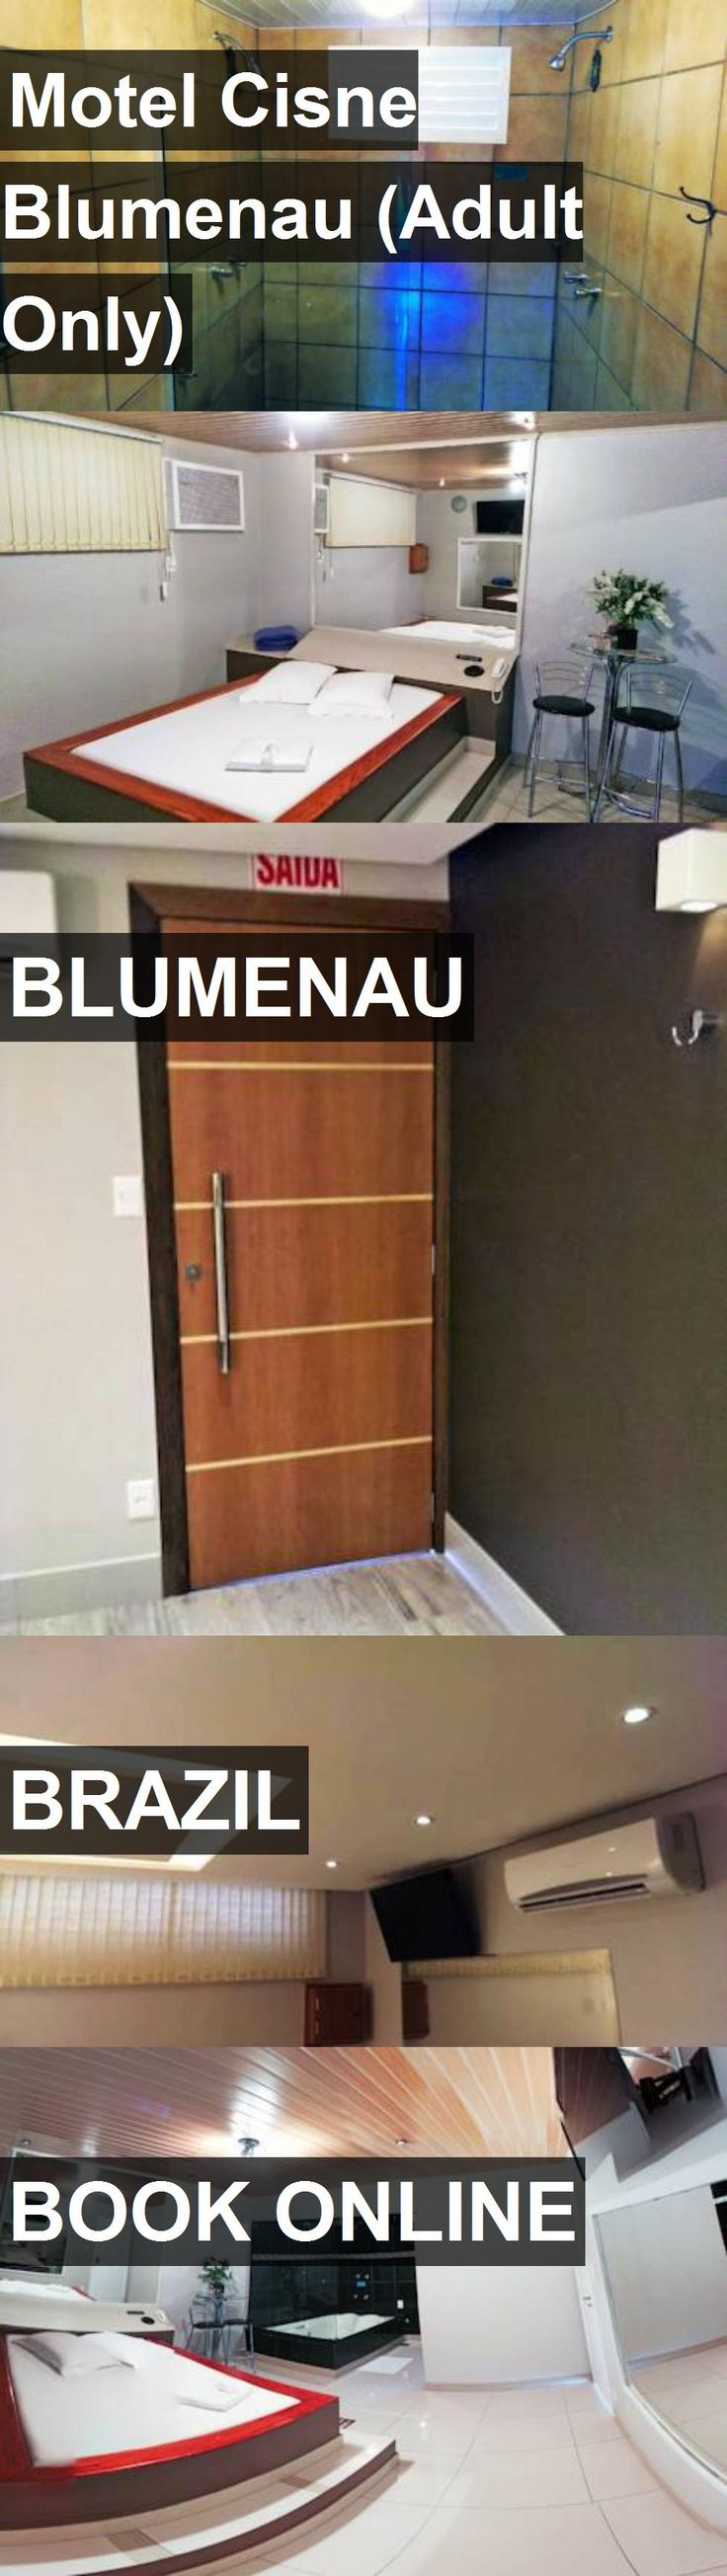 Hotel Motel Cisne Blumenau (Adult Only) in Blumenau, Brazil. For more information, photos, reviews and best prices please follow the link. #Brazil #Blumenau #travel #vacation #hotel